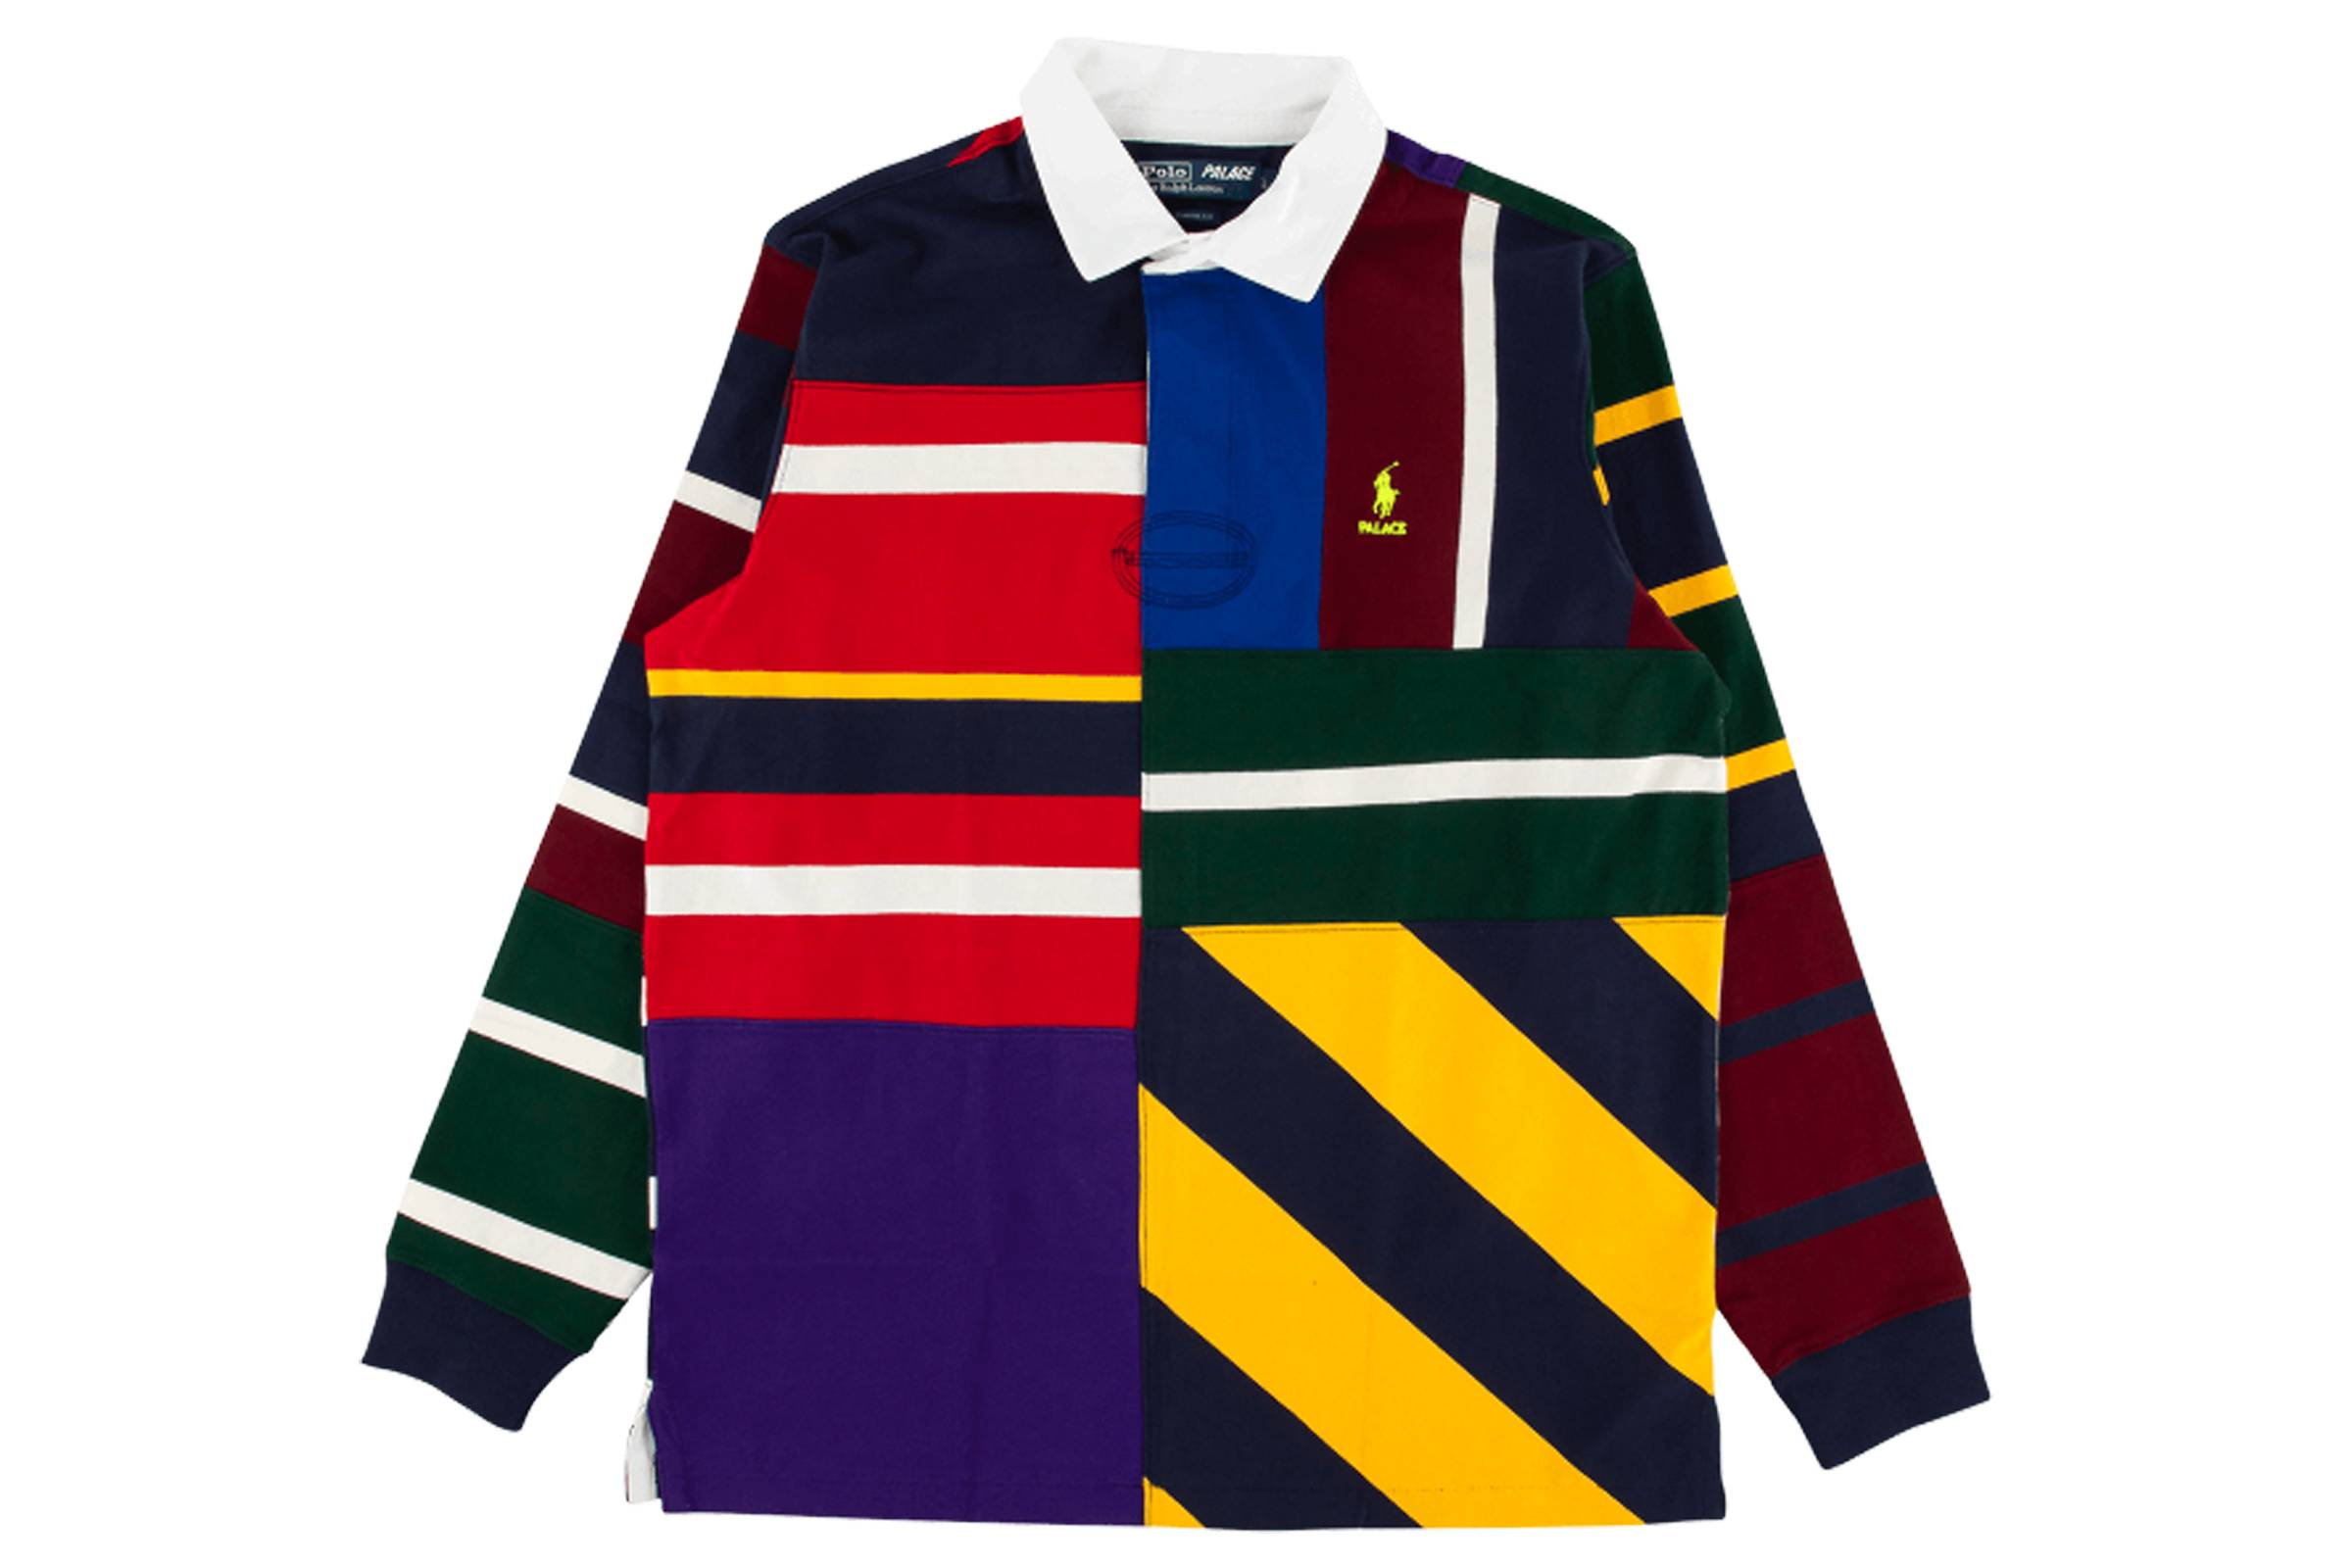 721db61e5a0cf7 Know Your Clothes: The Rugby Shirt - Rugby Shirt History | Grailed